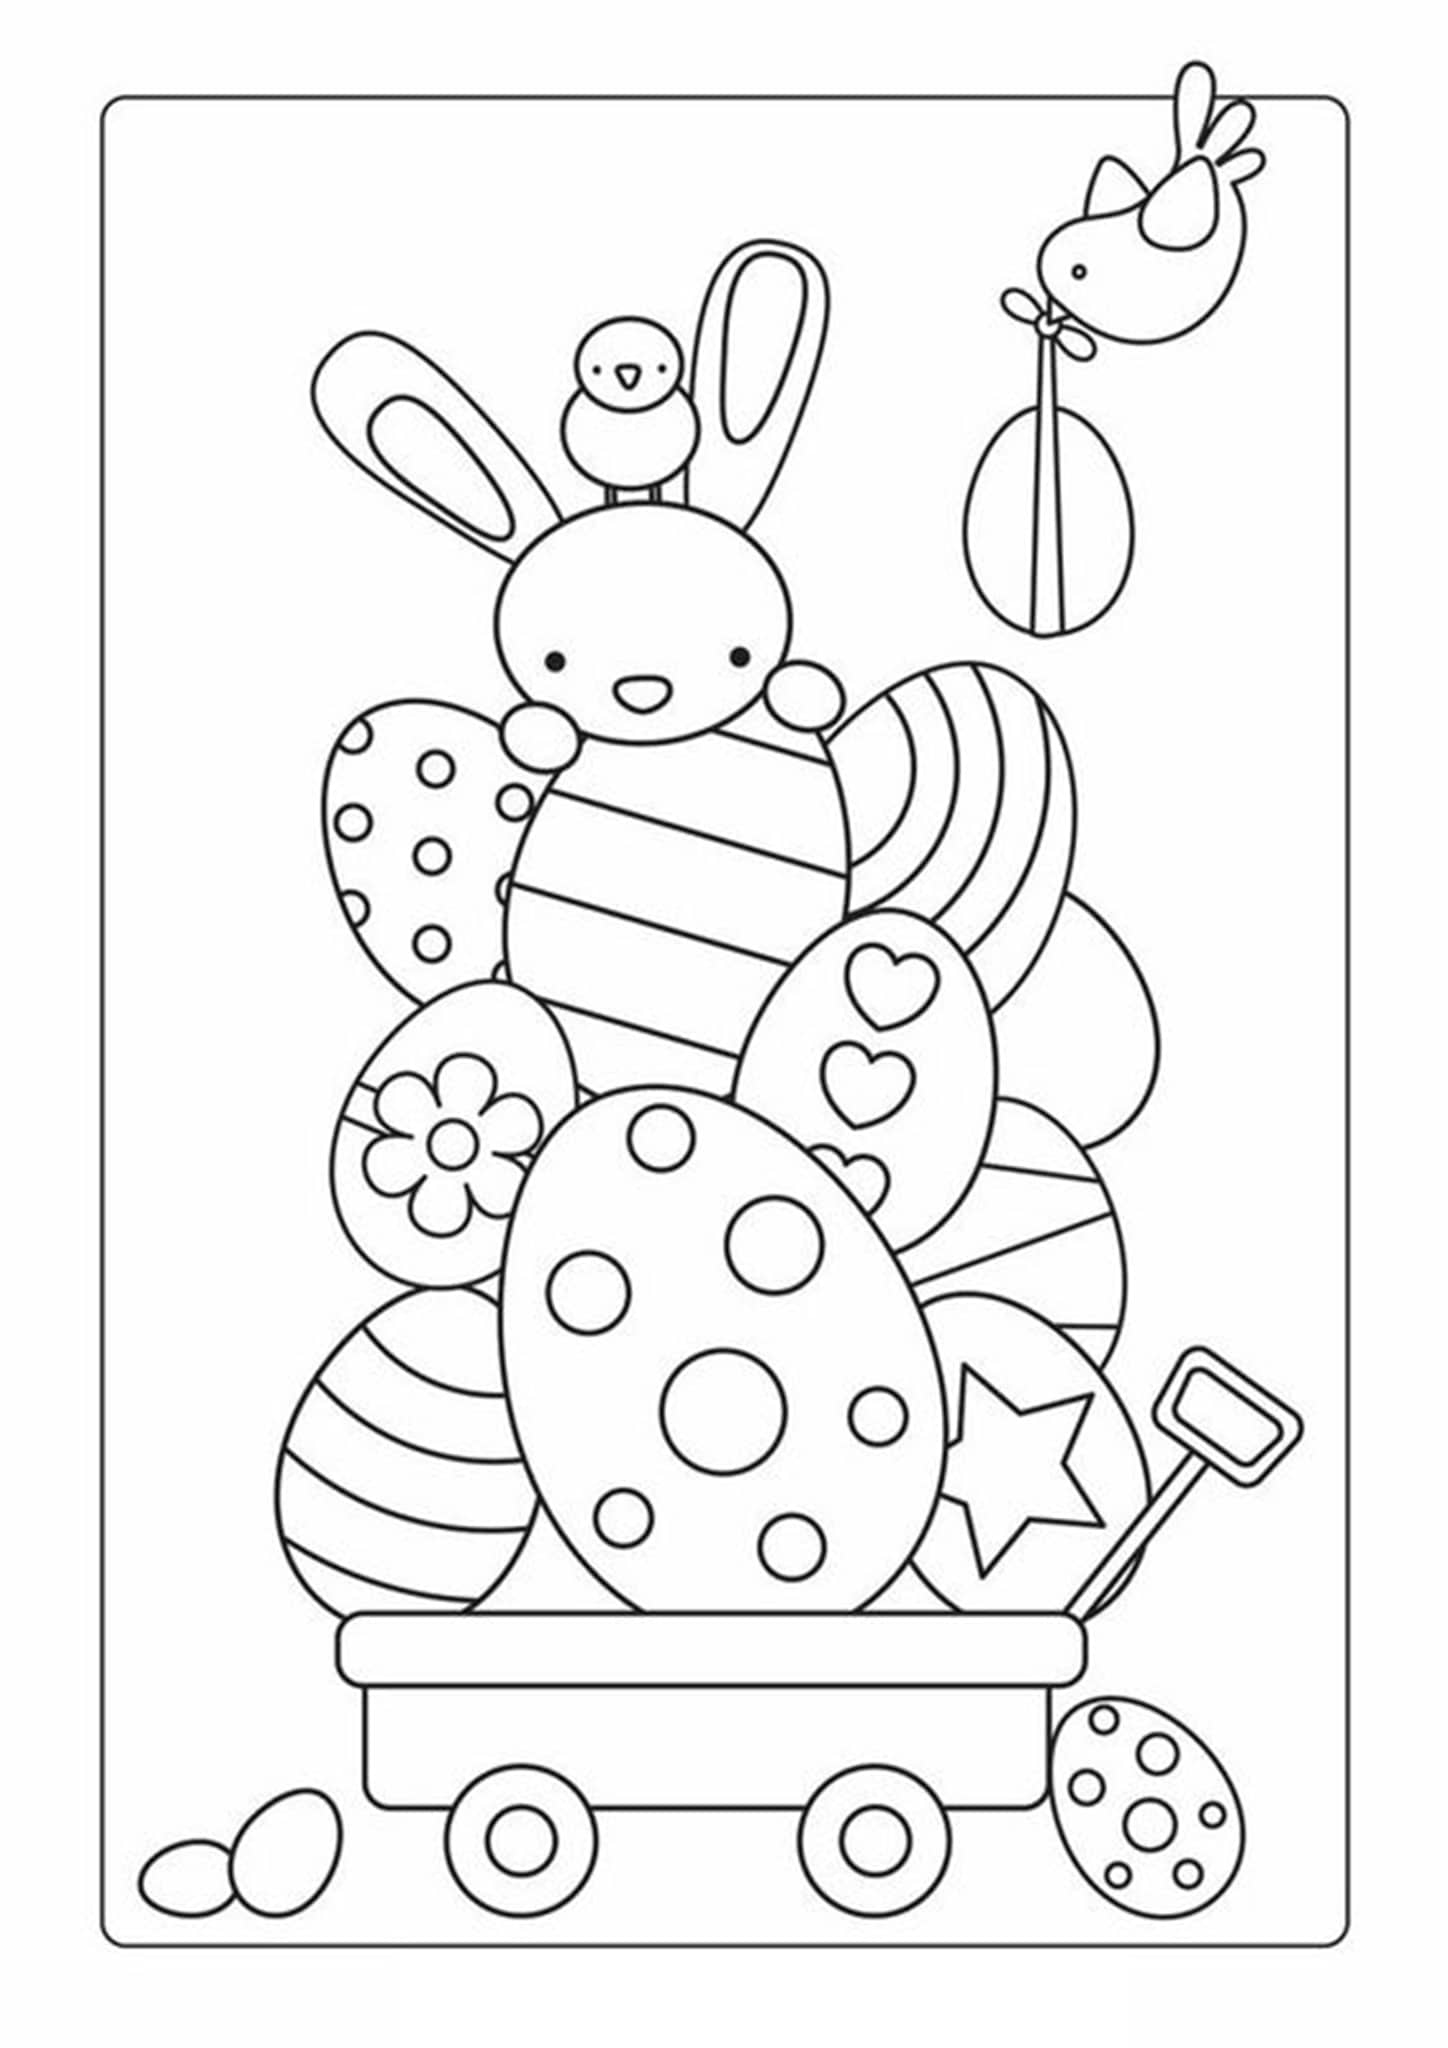 coloring kids rabbit cute bunny coloring pages to download and print for free rabbit coloring kids